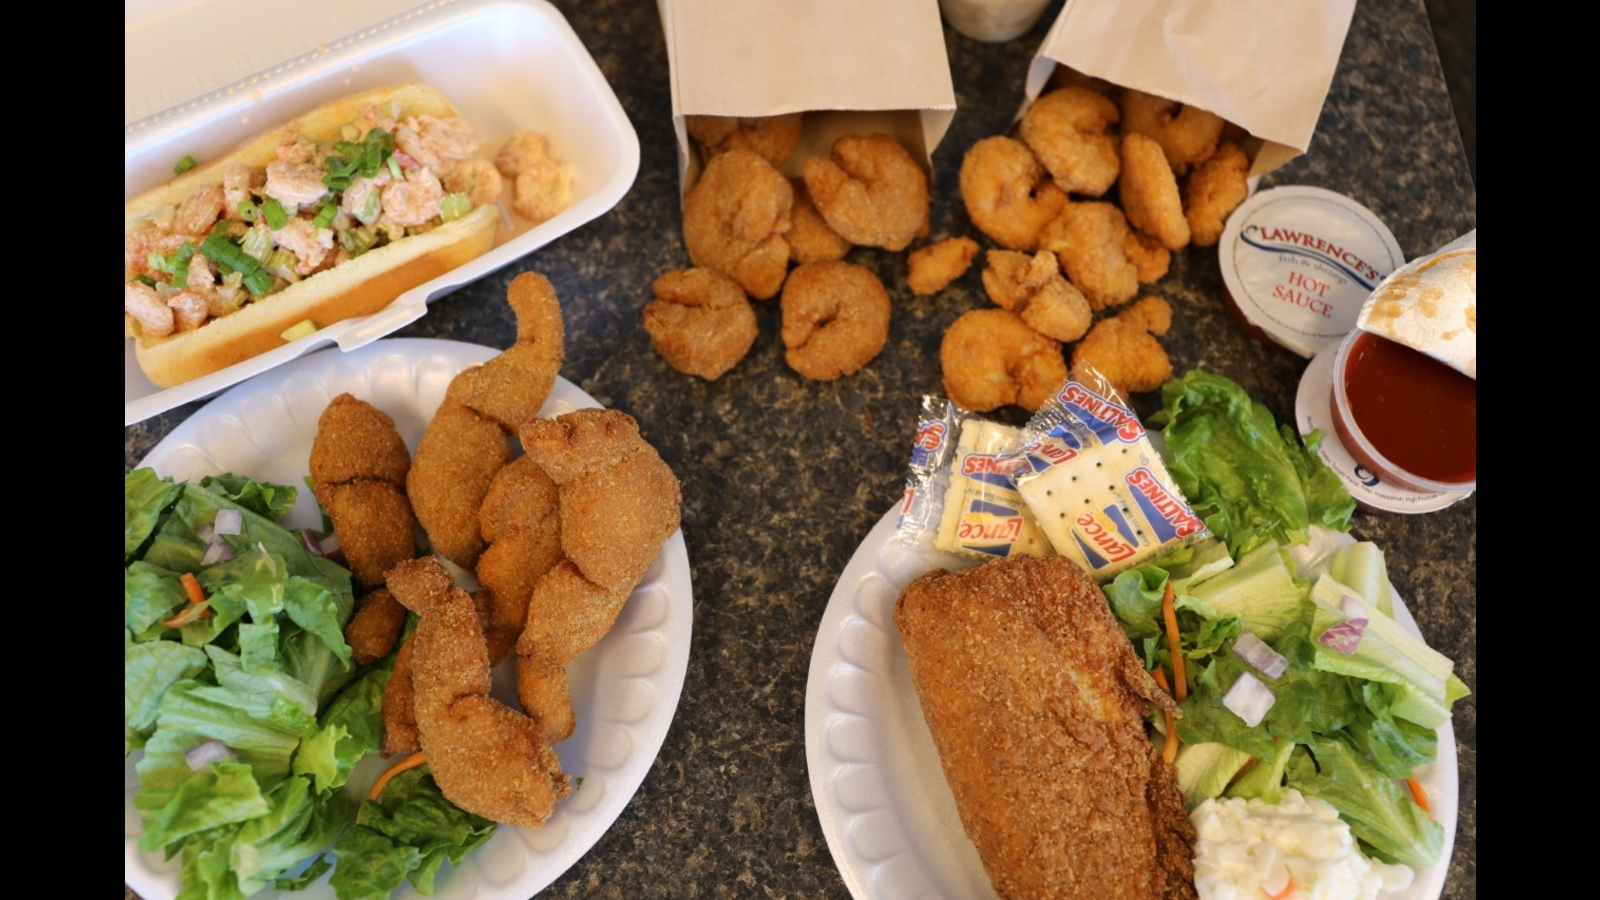 Lawrence's Fish and Shrimp celebrates 70 years in business